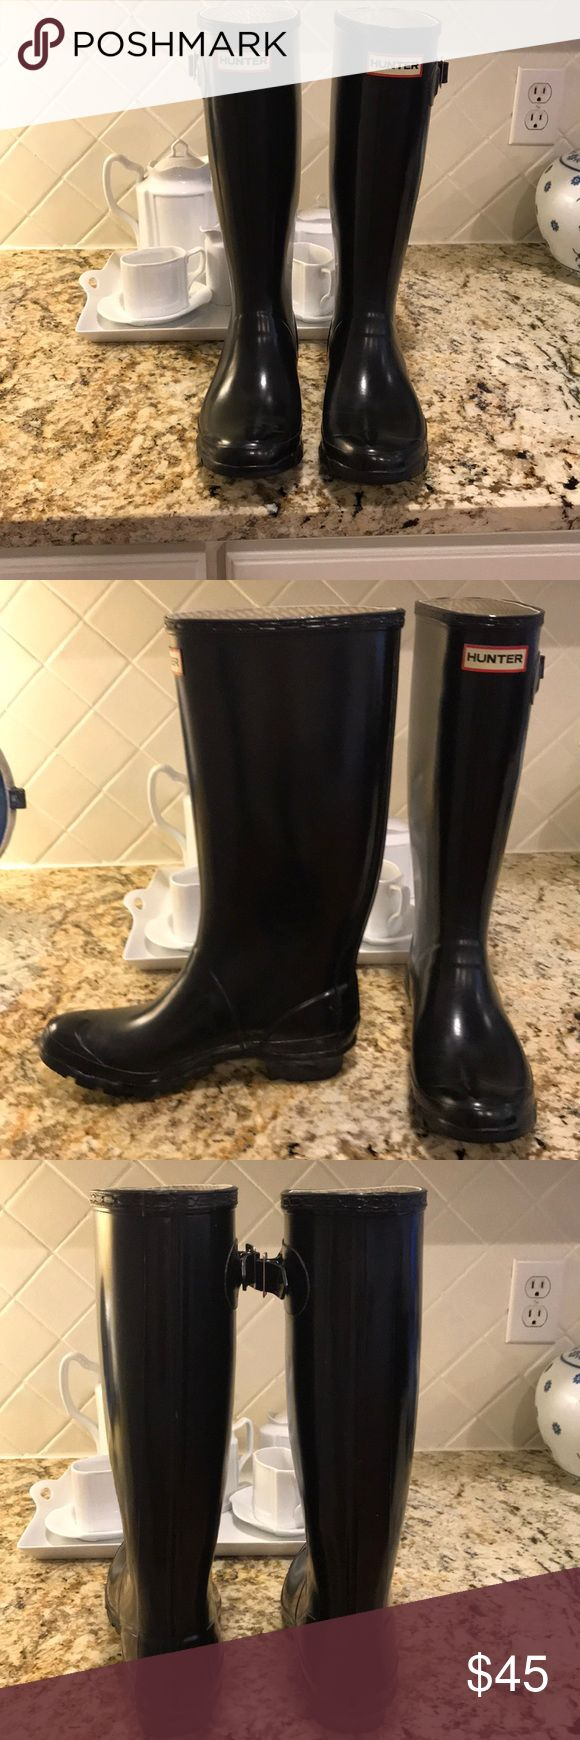 Hunter Shiny black rain boots Shiny Hunter rain boots. Only worn 2 times! Hunter Boots Shoes Winter & Rain Boots